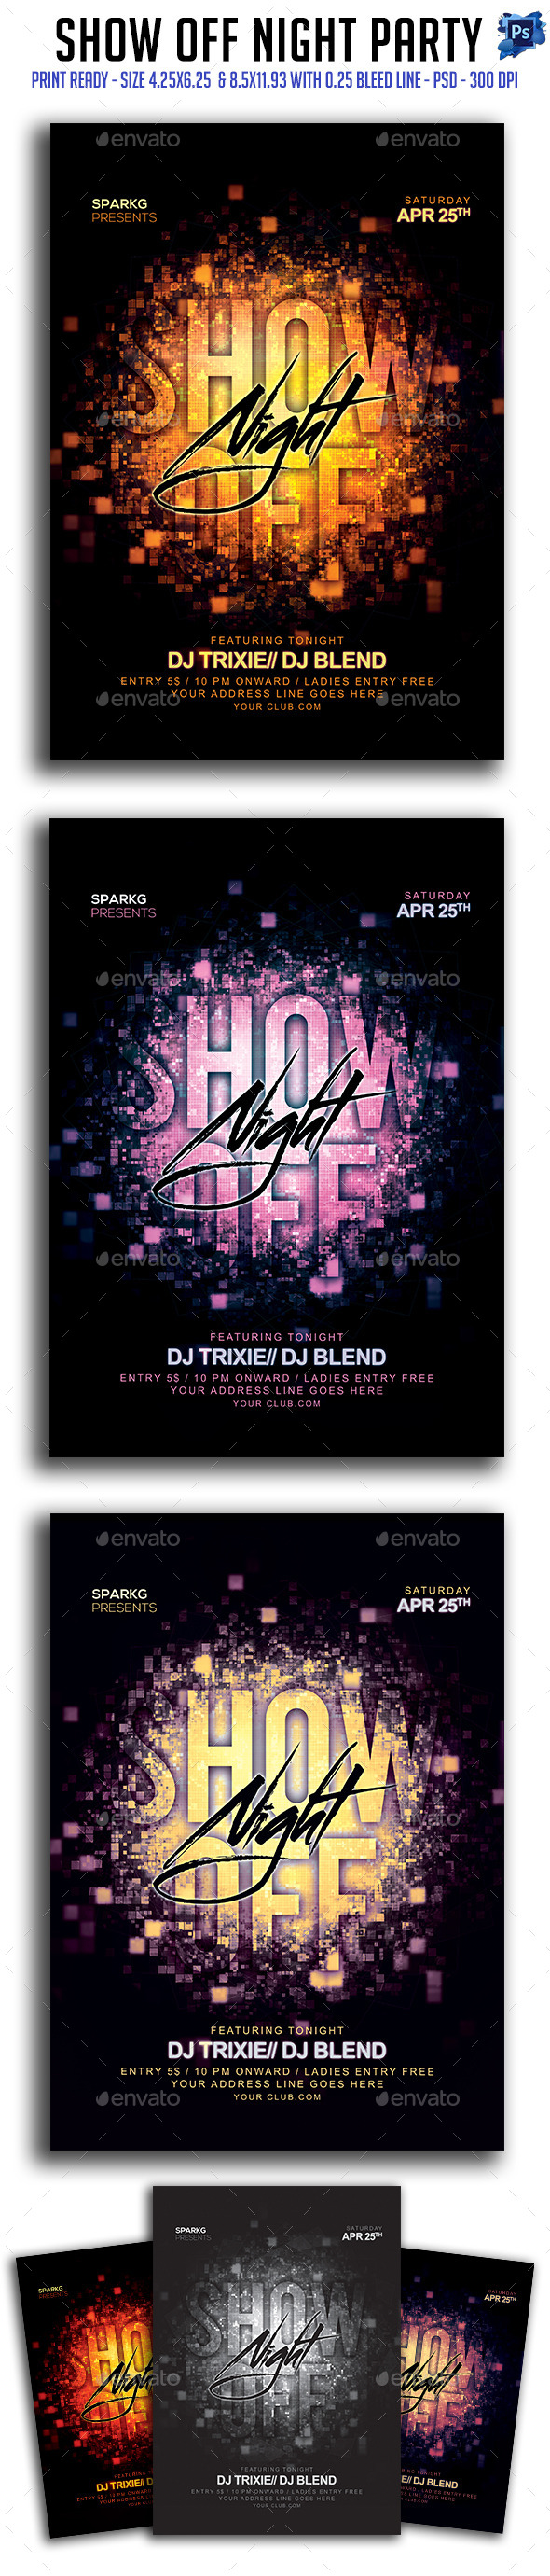 GraphicRiver Show Off Night Party Flyer 11468344